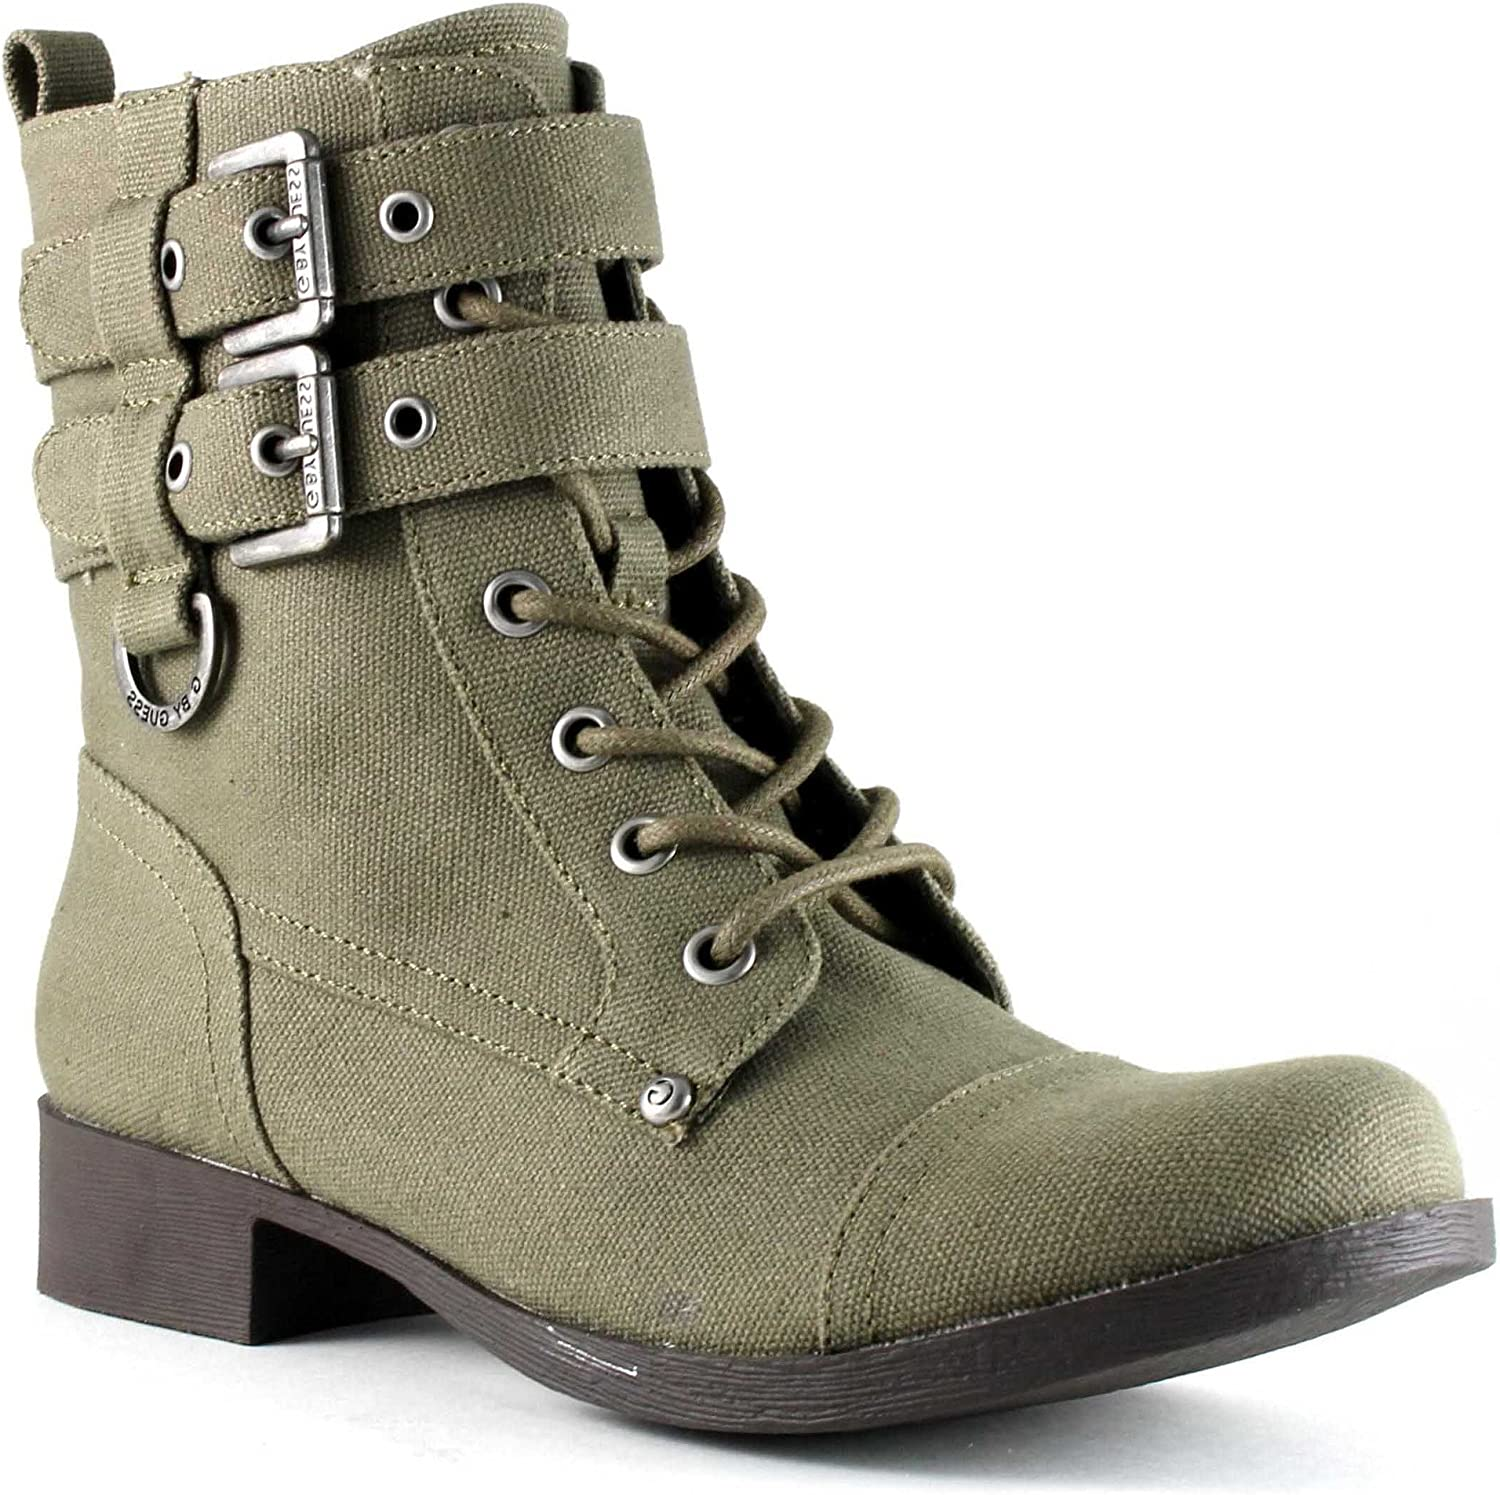 Bell2 313-Mgnfb Green boots